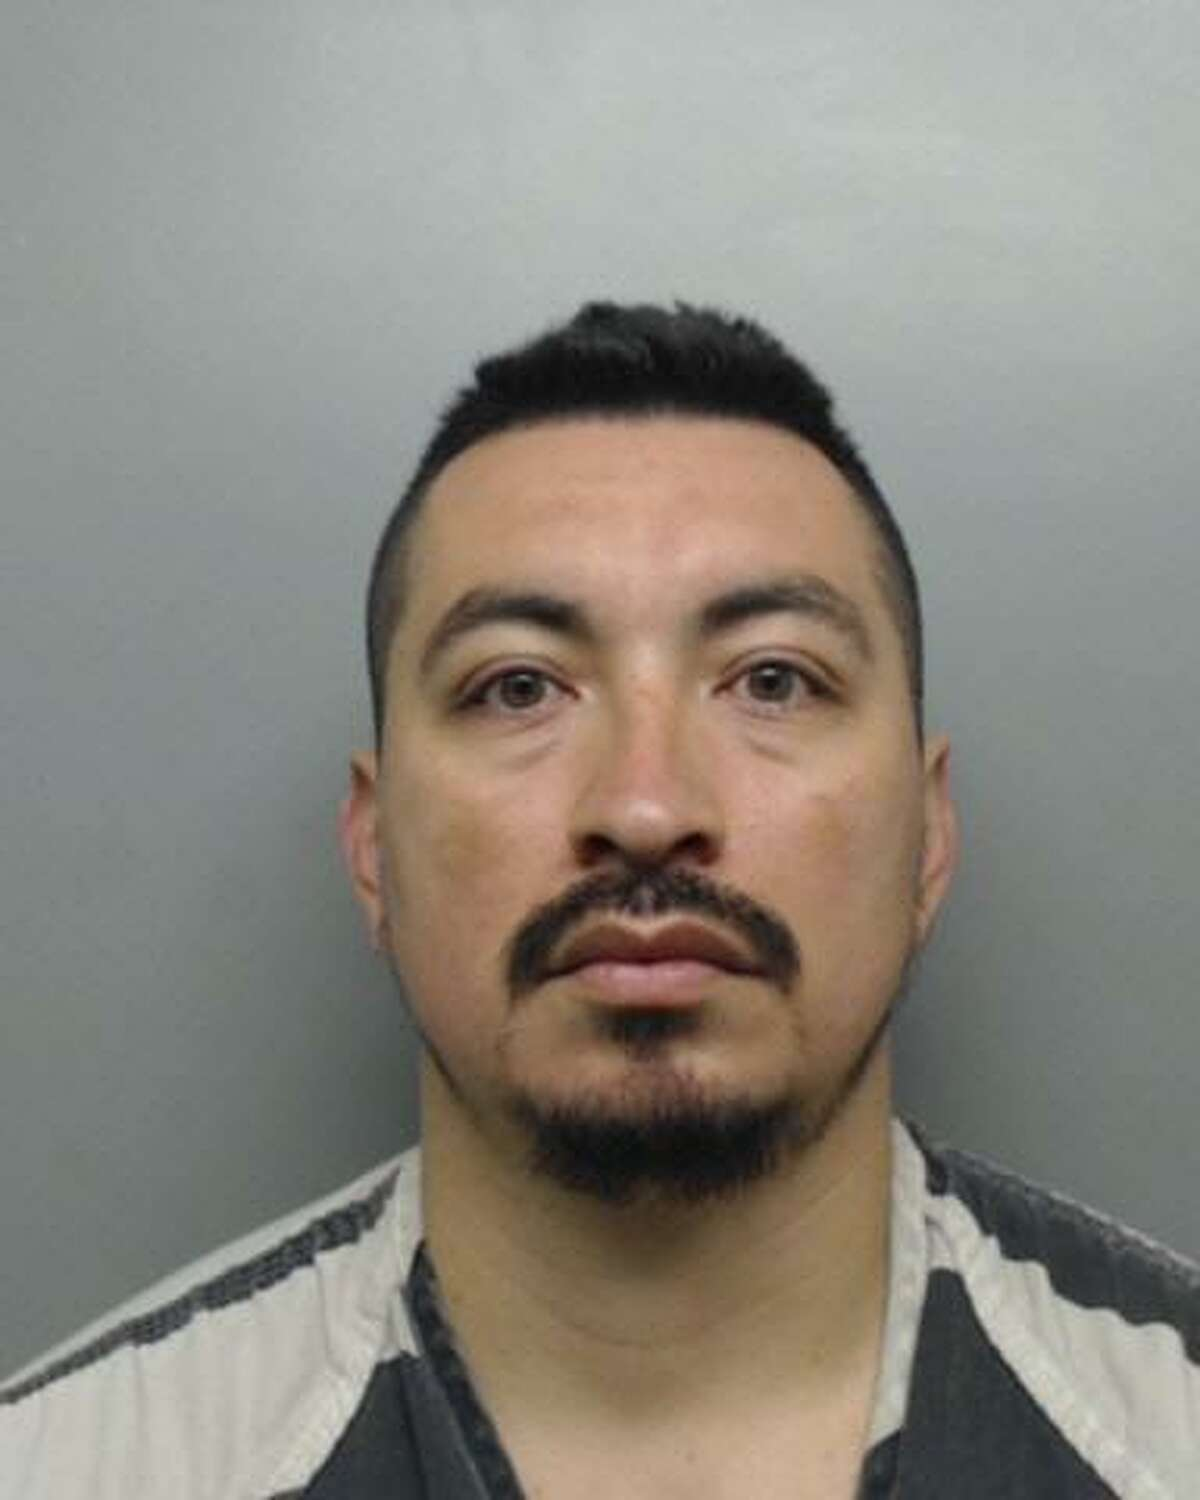 U.S. Border Patrol agents arrested for various crimes David Villarreal, 32, arrested on suspicion of sexually assaulting a woman, tampering with physical evidence and official oppression.